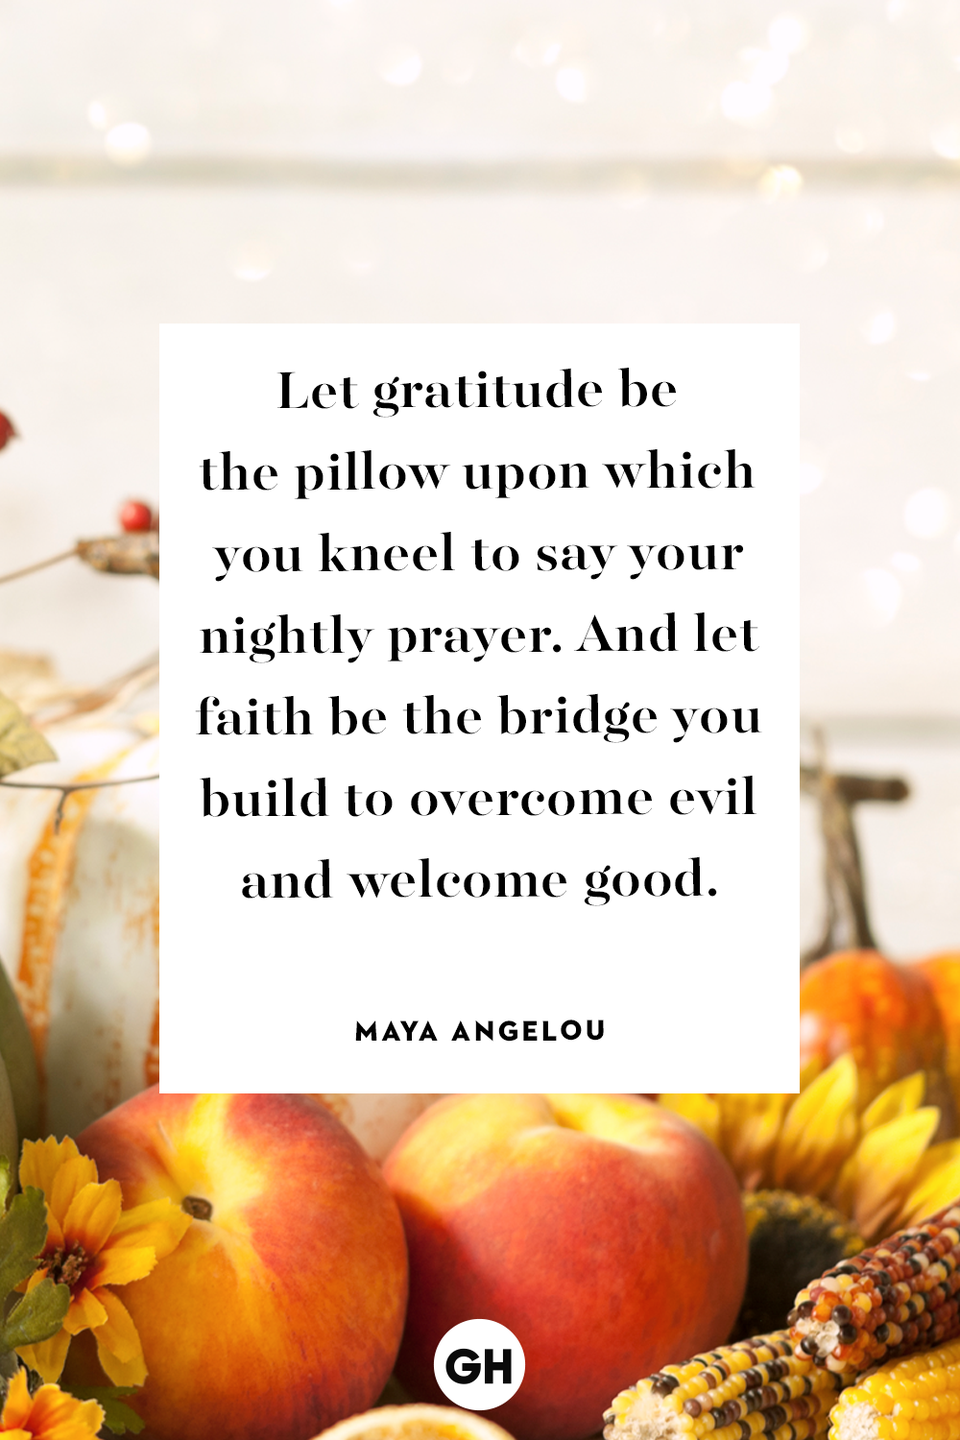 <p>Let gratitude be the pillow upon which you kneel to say your nightly prayer. And let faith be the bridge you build to overcome evil and welcome good.</p>